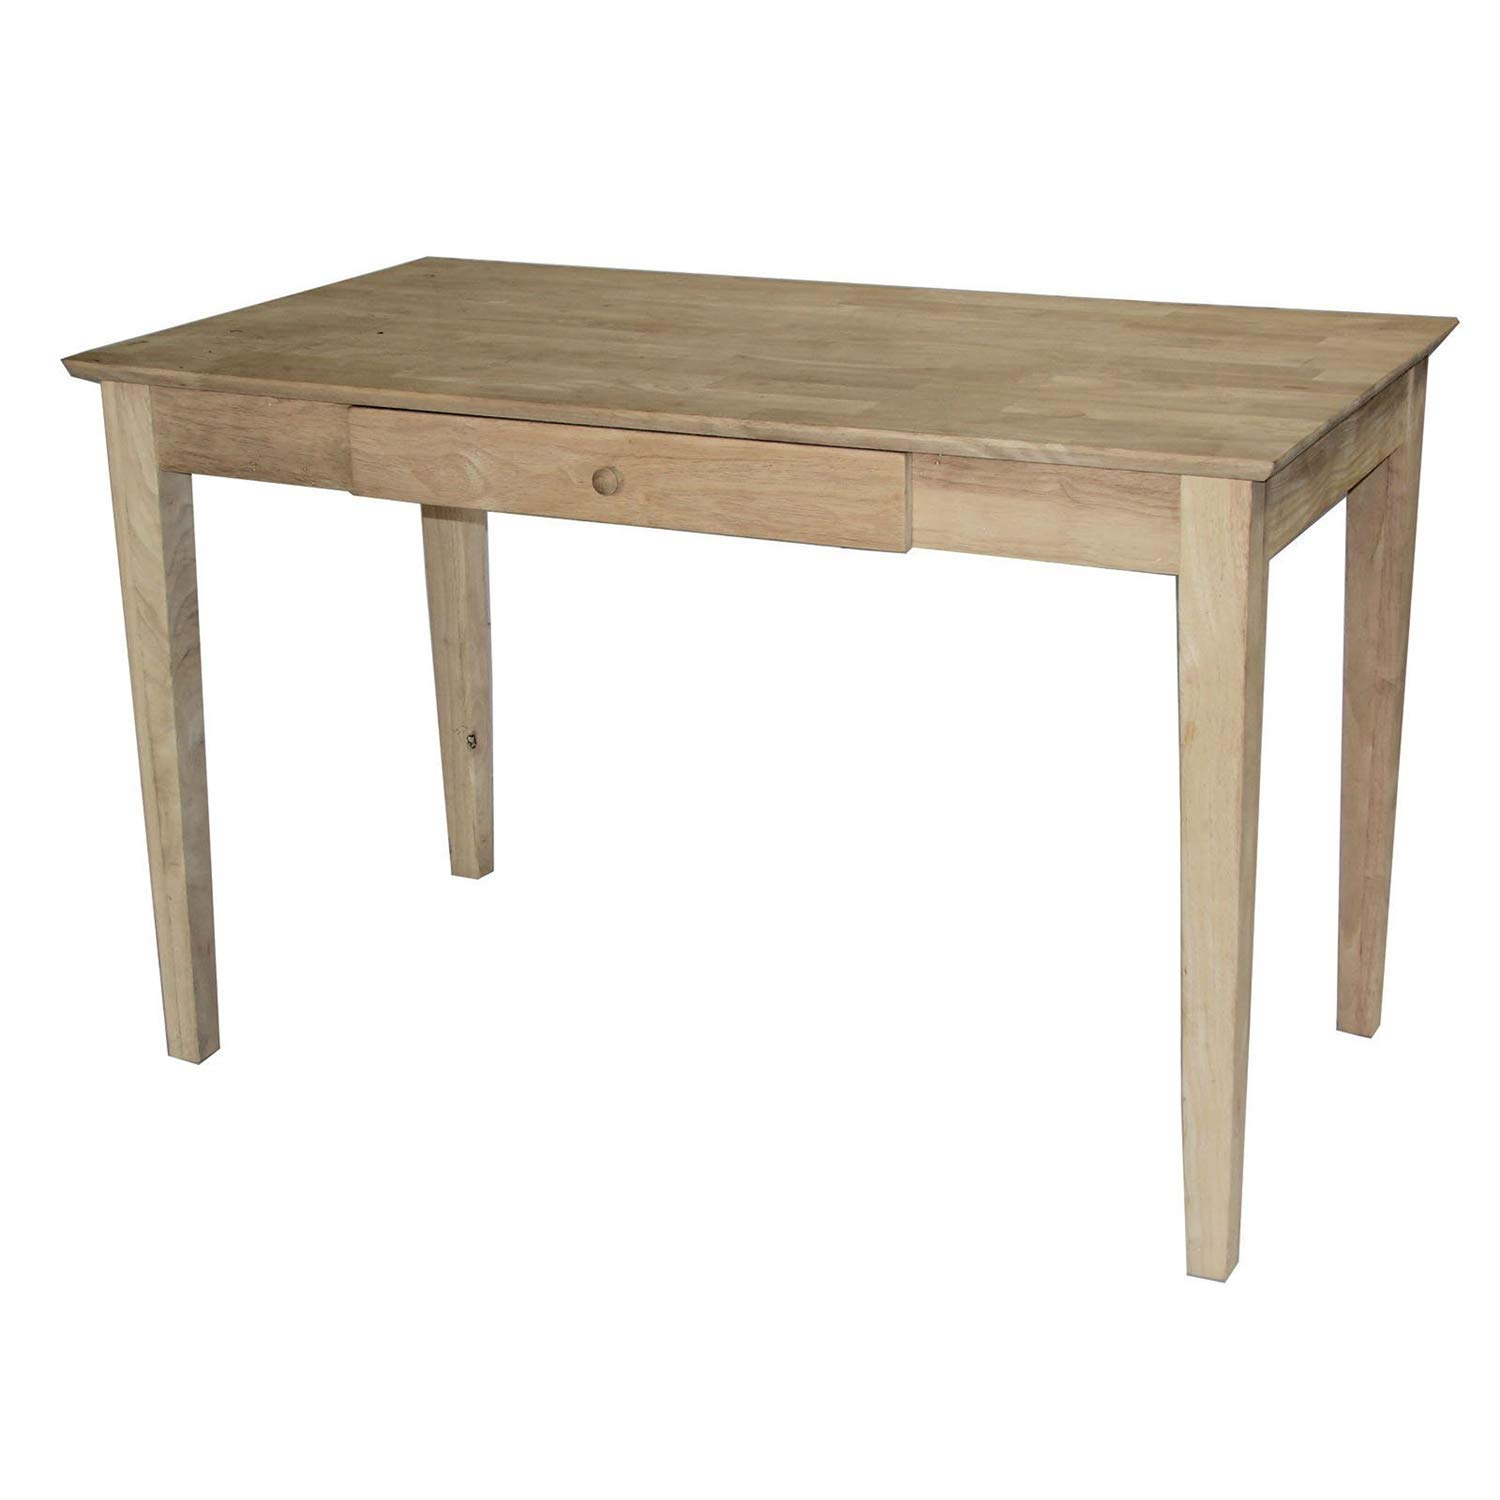 Trustpurchase Unfinished Solid Wood Desk Laptop Computer Writing Table with Drawer, This Quaint Desk is A Blank Canvas Just Waiting for Your Personal Stamp, it Features Clean Lines, Ample Work Space